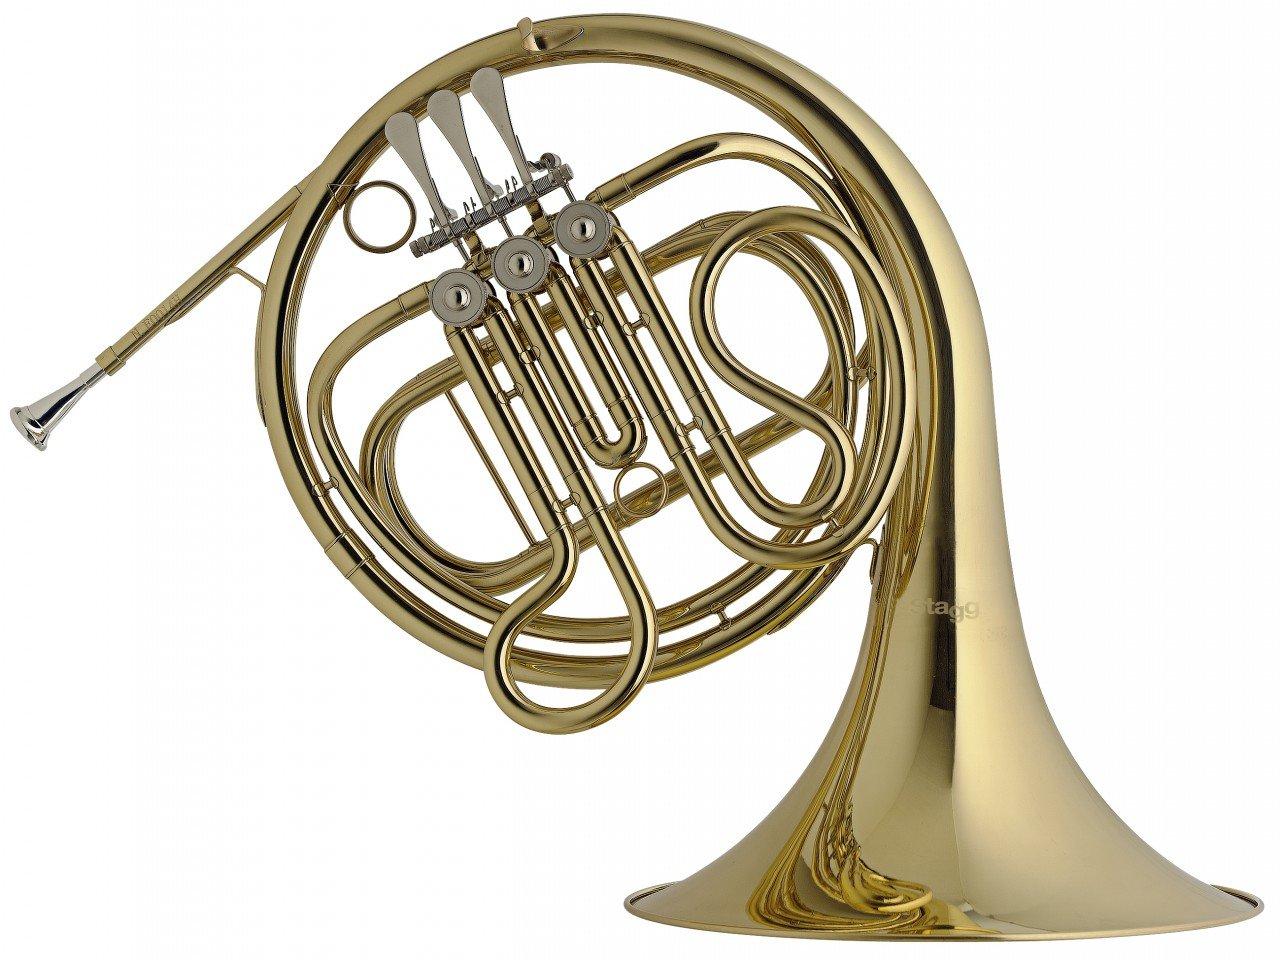 STAGG WS-HR245 F FRENCH HORN 3 ROTARY VALVES W/CASE